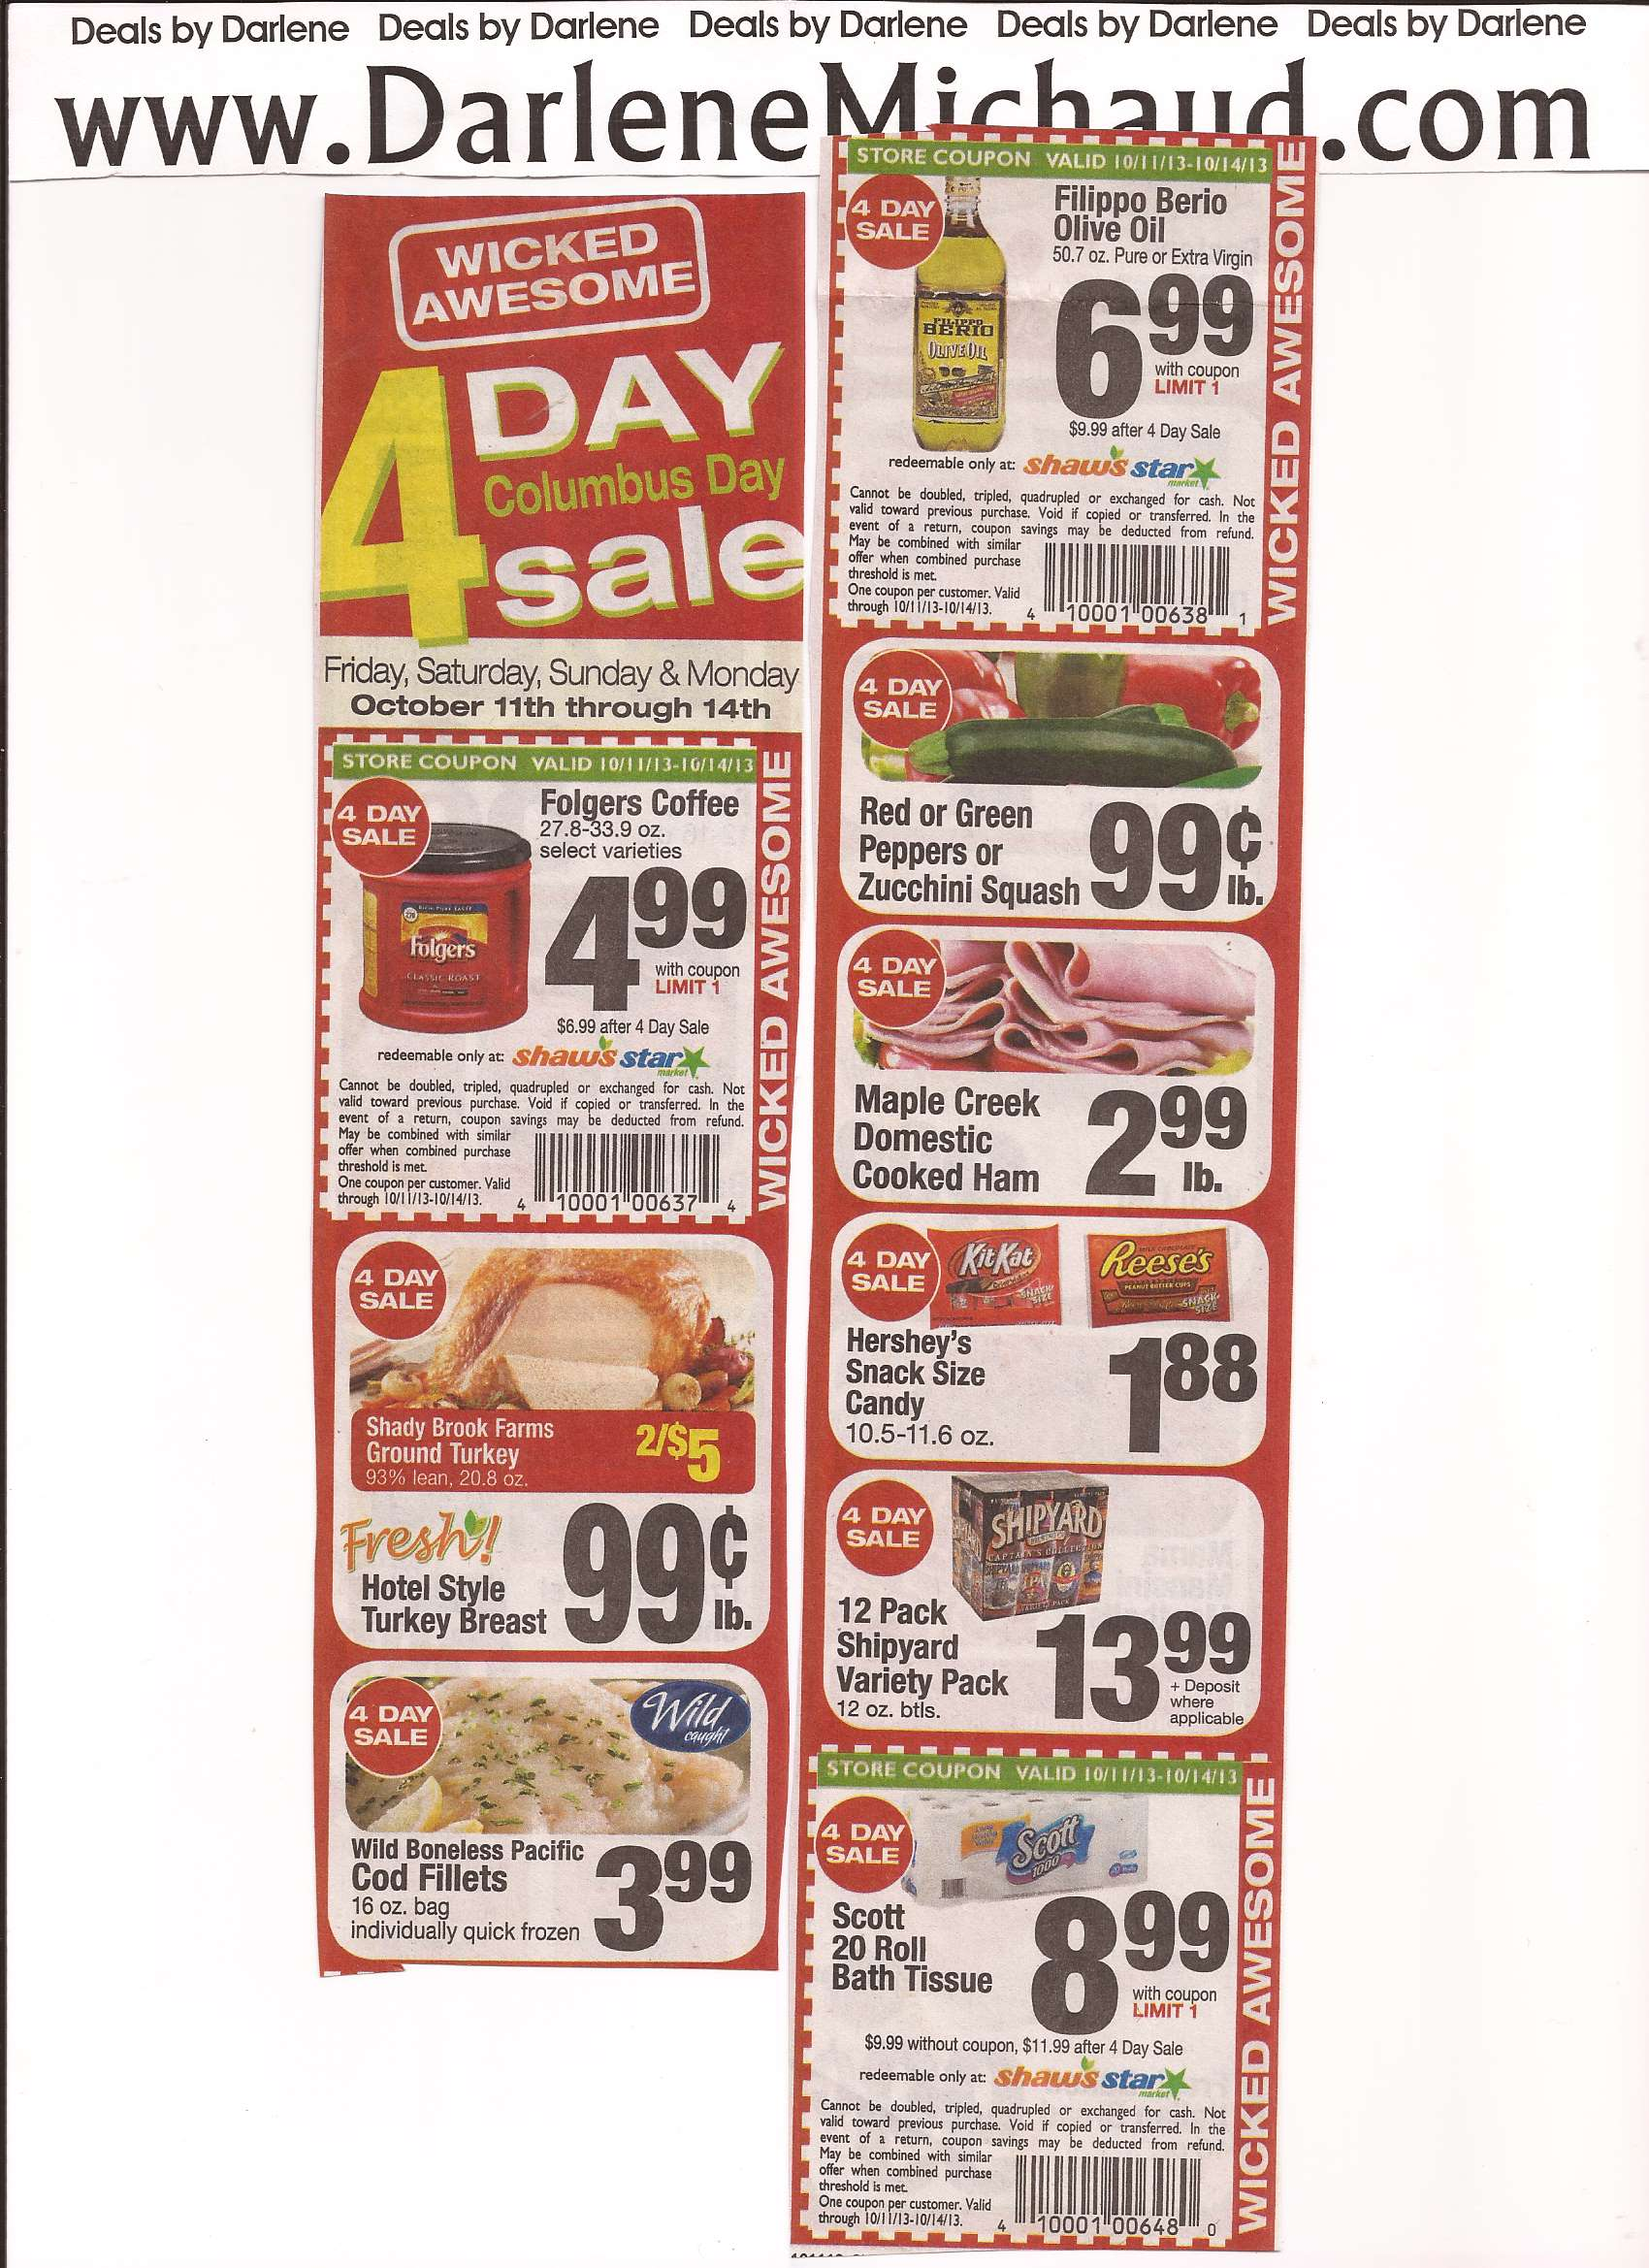 Shaws Weekly Ad October 7 – 13, – View Shaws ad preview this week, sunday flyer, online circular ad and find a great deal with special sale prices this week at Shaws. You can see the latest weekly ad for this week from Shaws here: Shaws Weekly Ad.